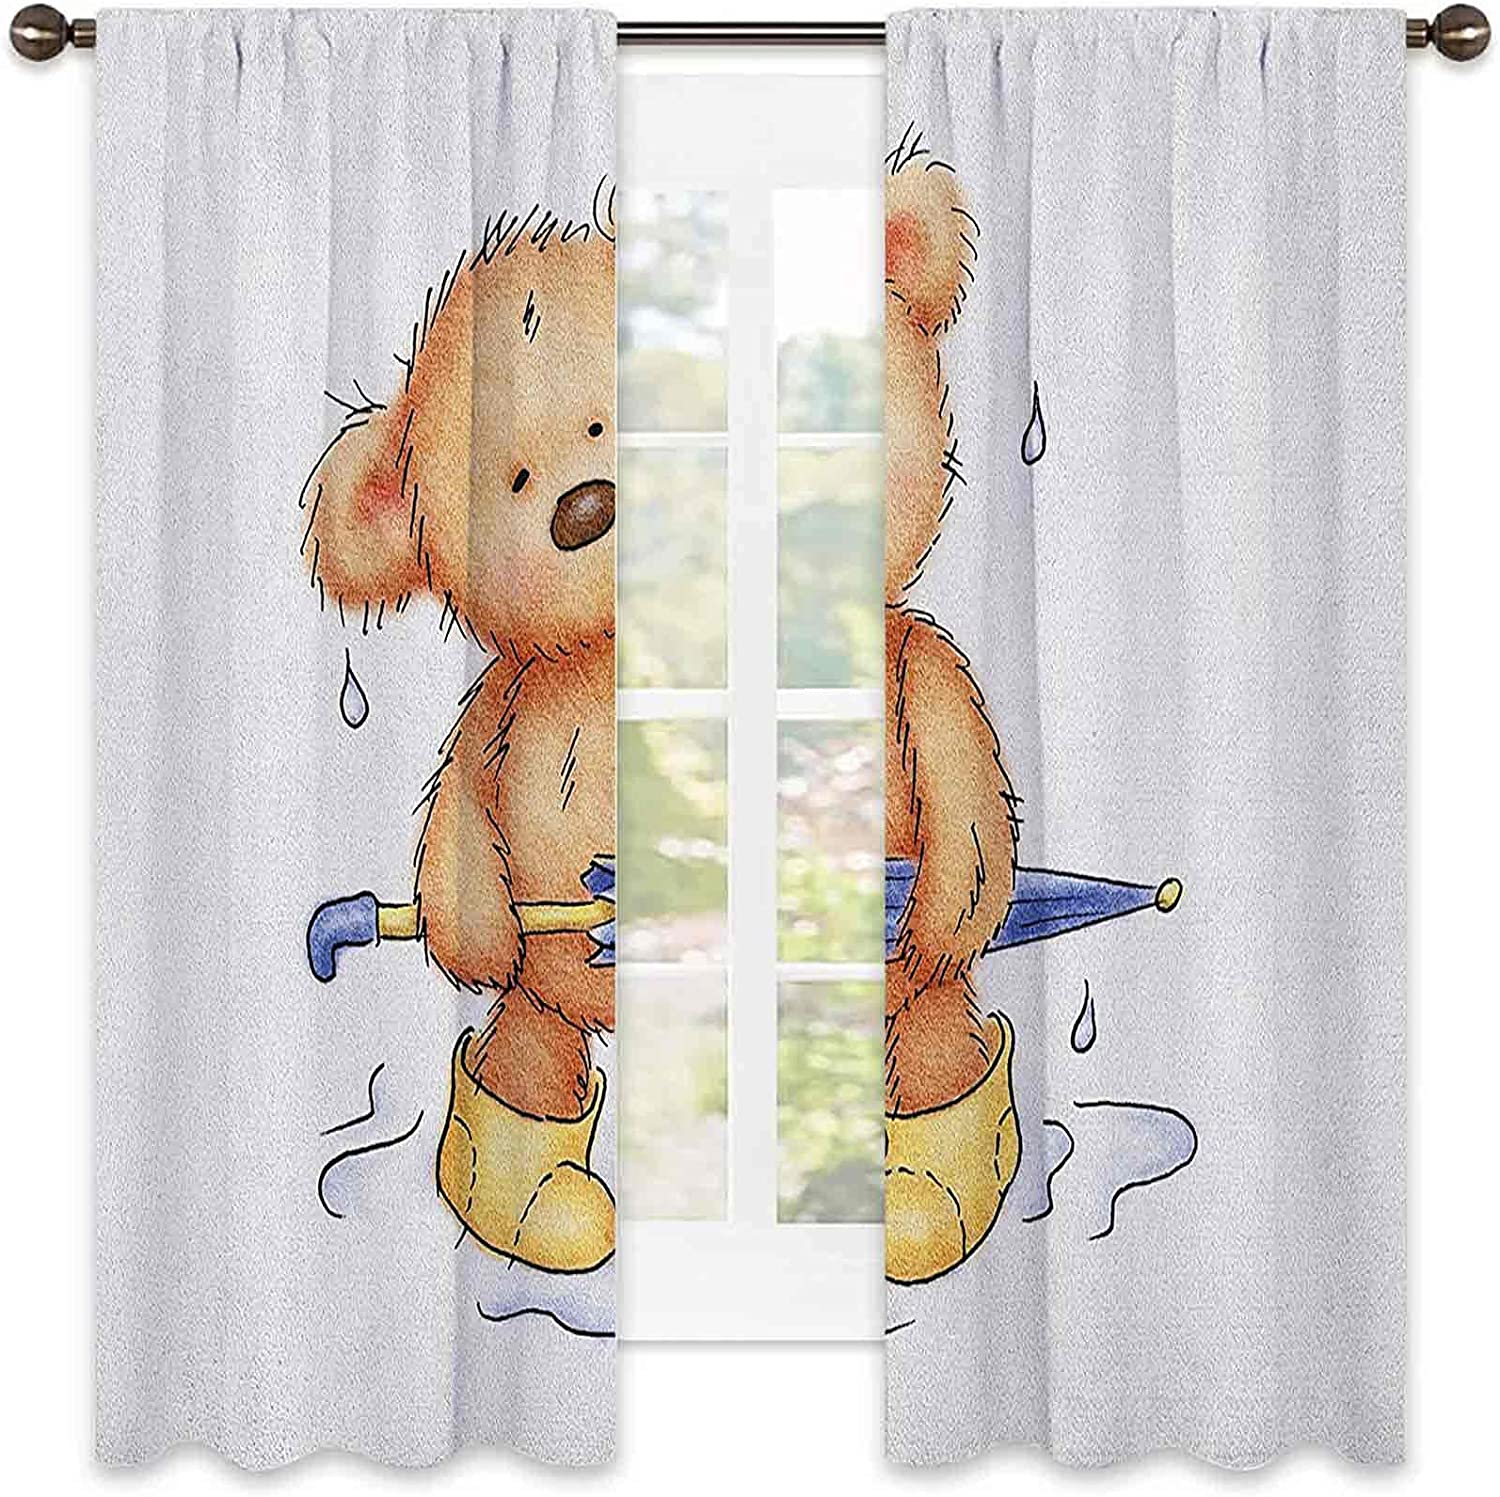 Bear Shading Insulated Curtain Teddy up Rain Caught Max 61% OFF in Fees free!! wit